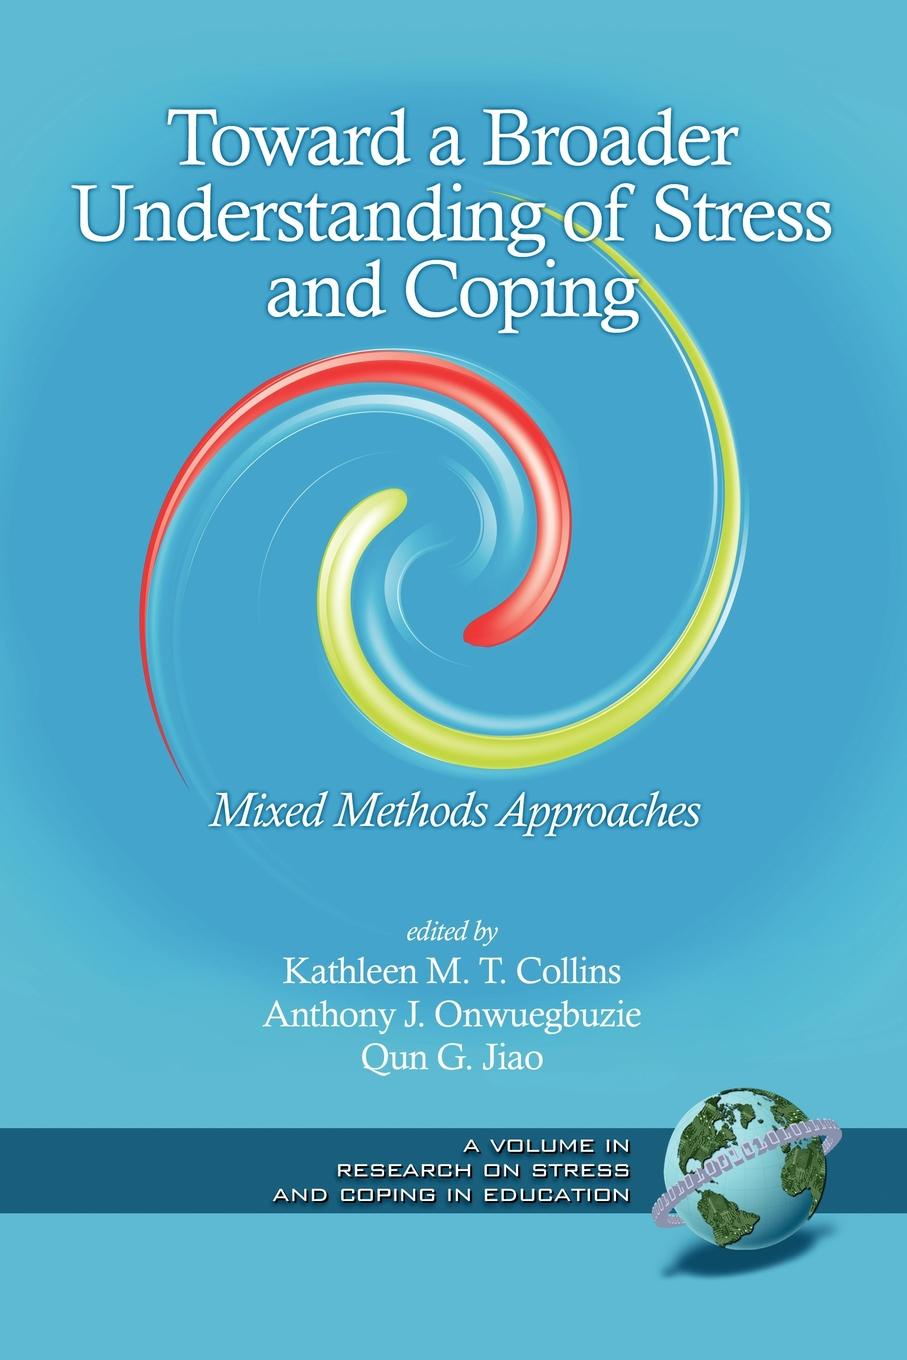 Toward a Broader Understanding of Stress and Coping. Mixed Methods Approaches (PB) недорго, оригинальная цена